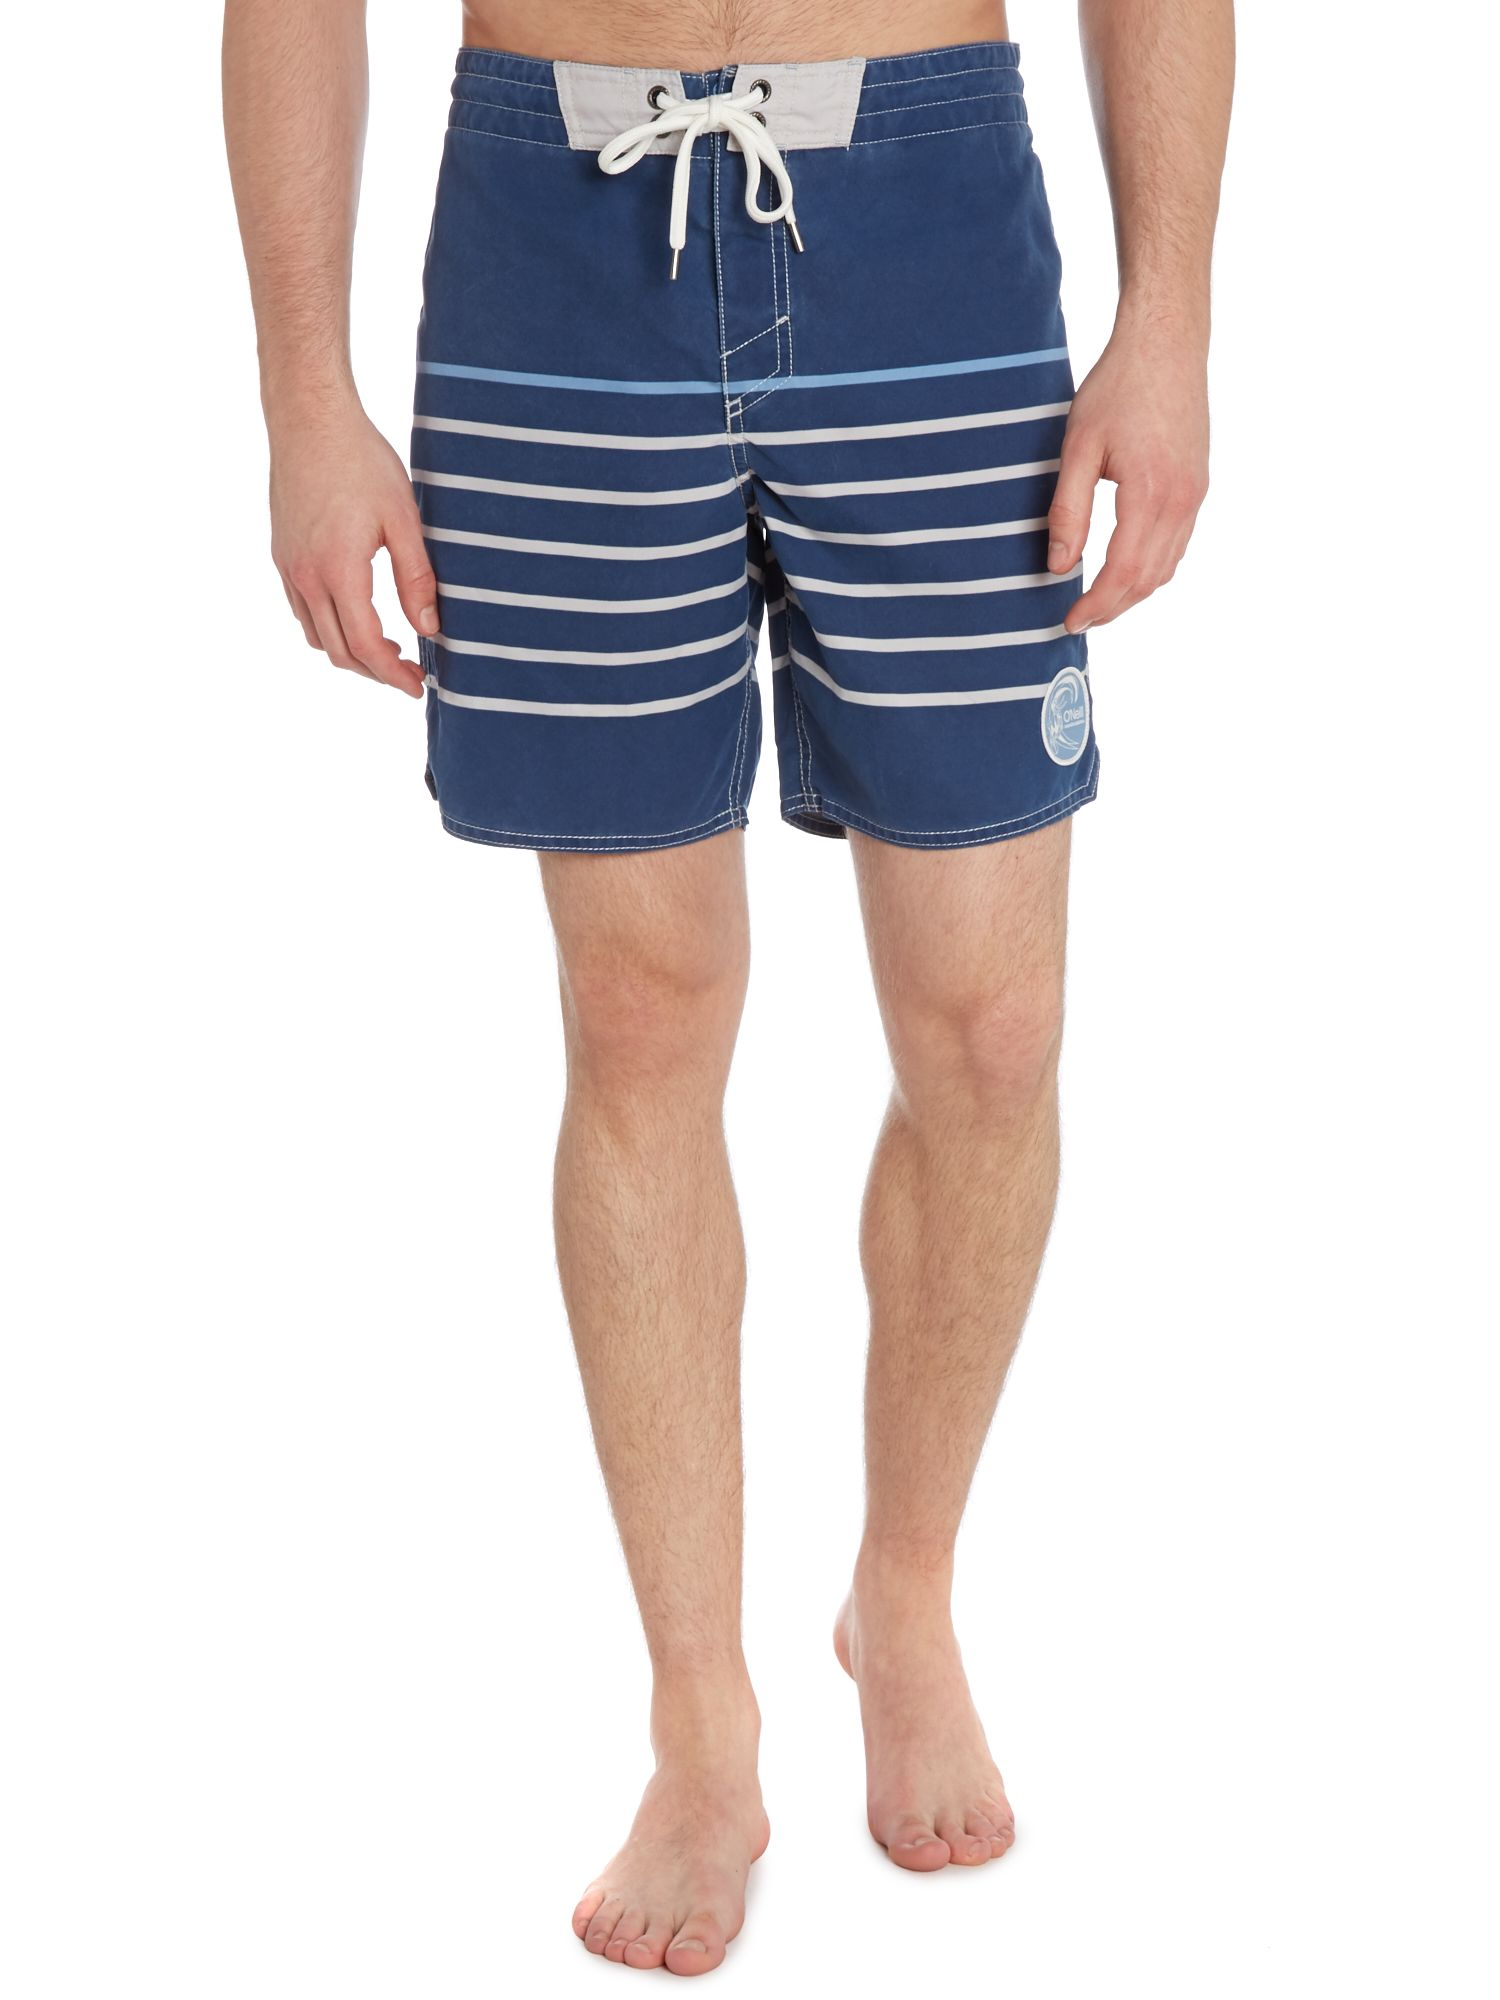 Naval stripe board shorts